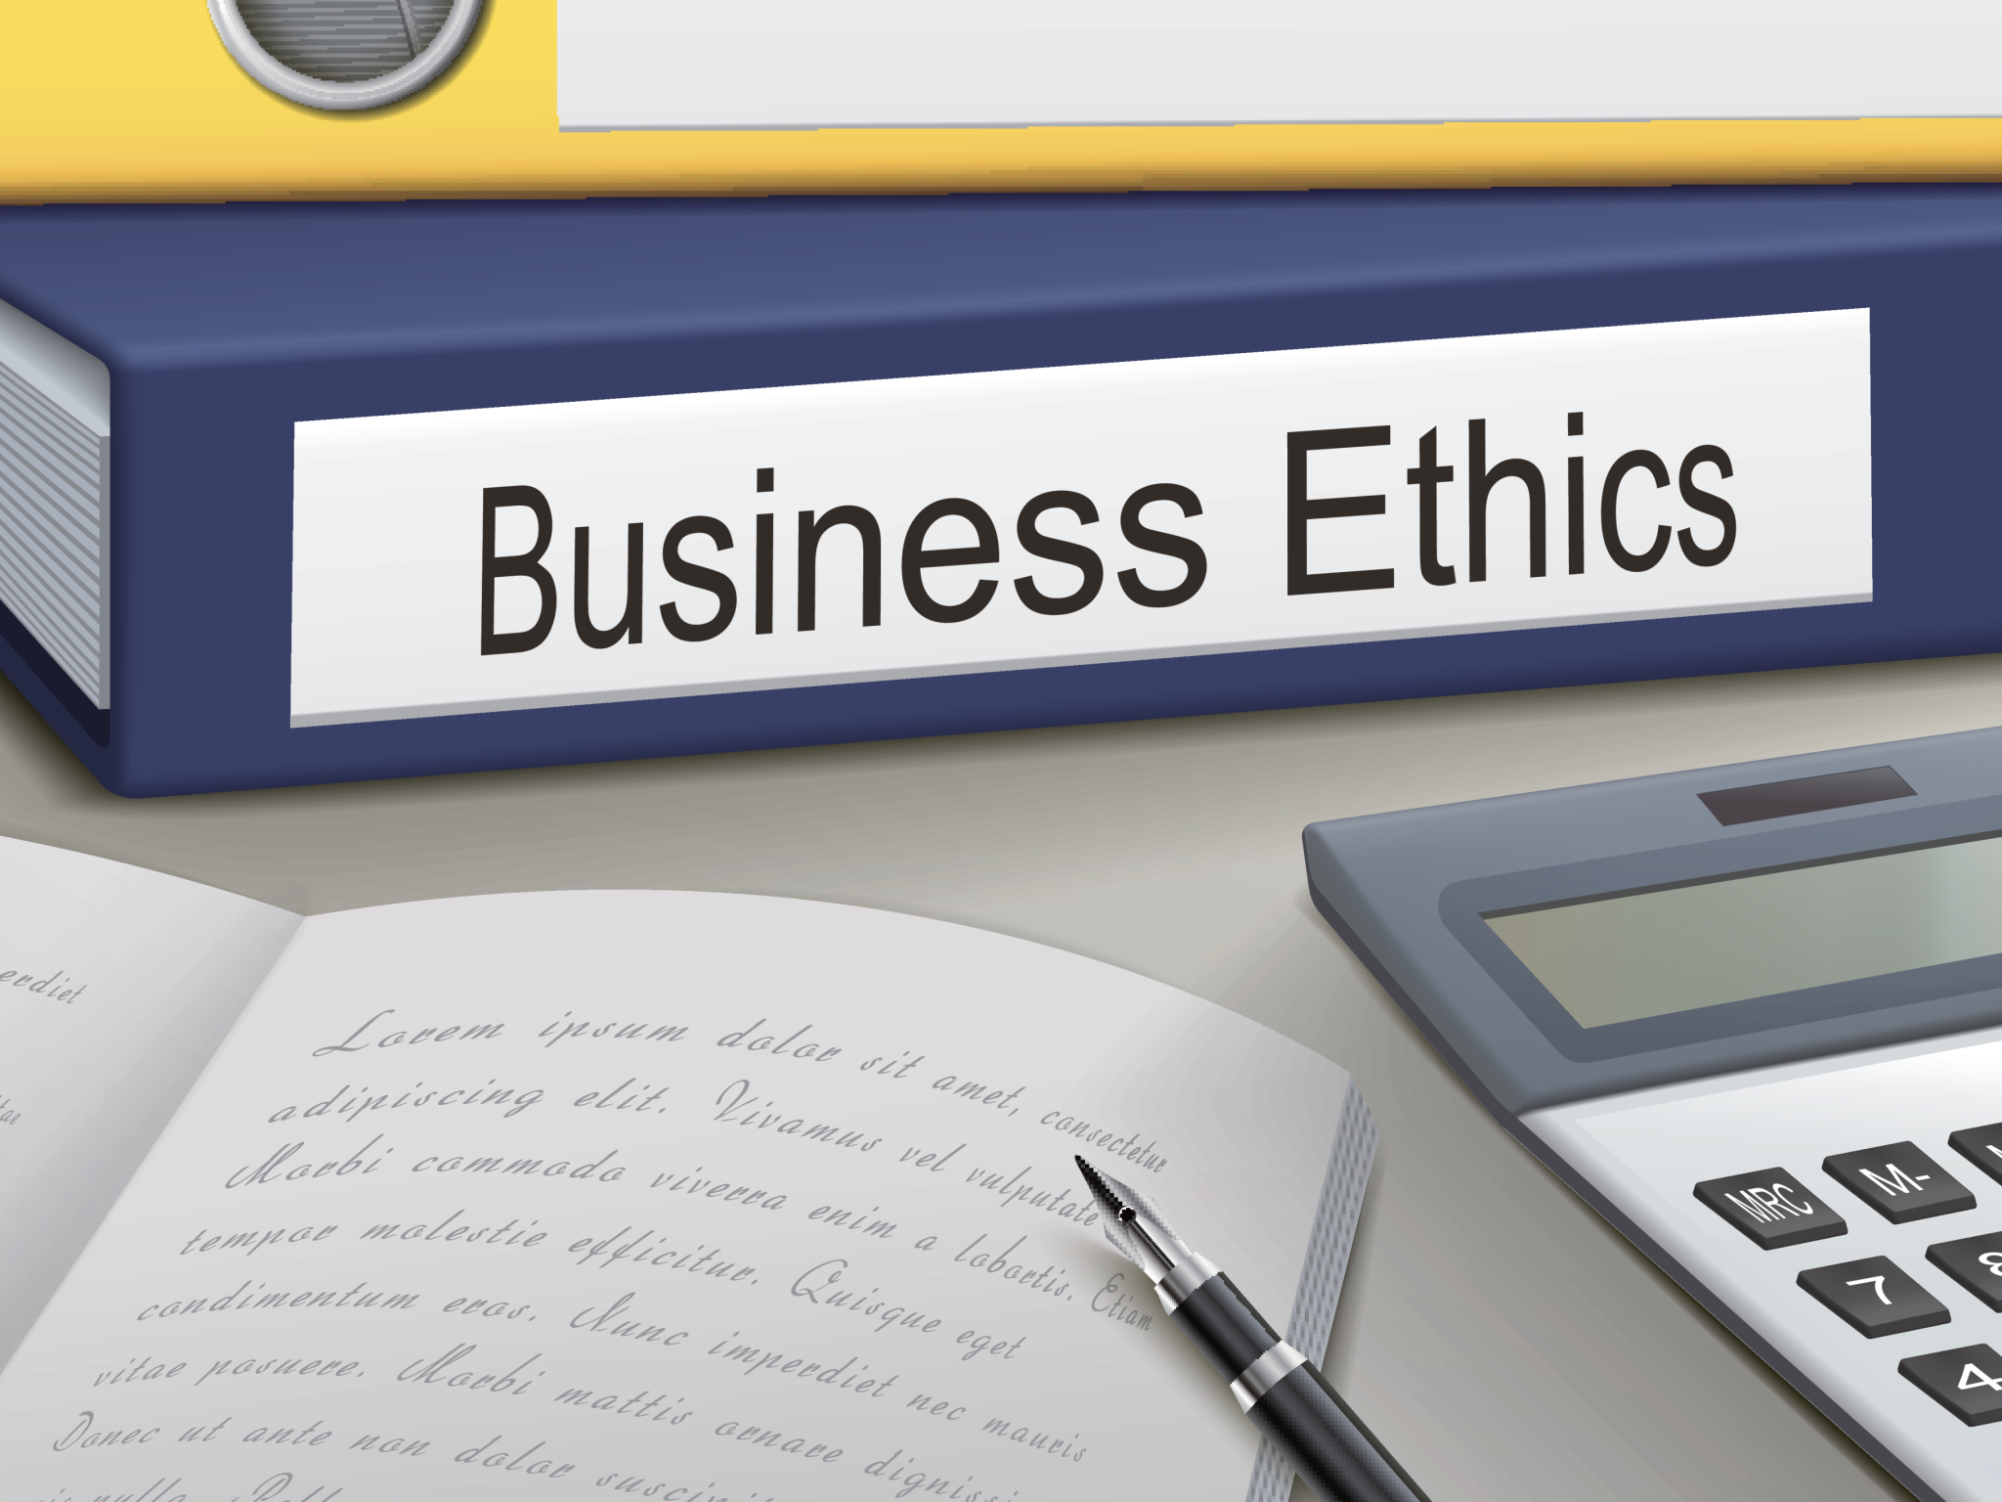 business ethics archives the compliance and ethics blog ethics at work